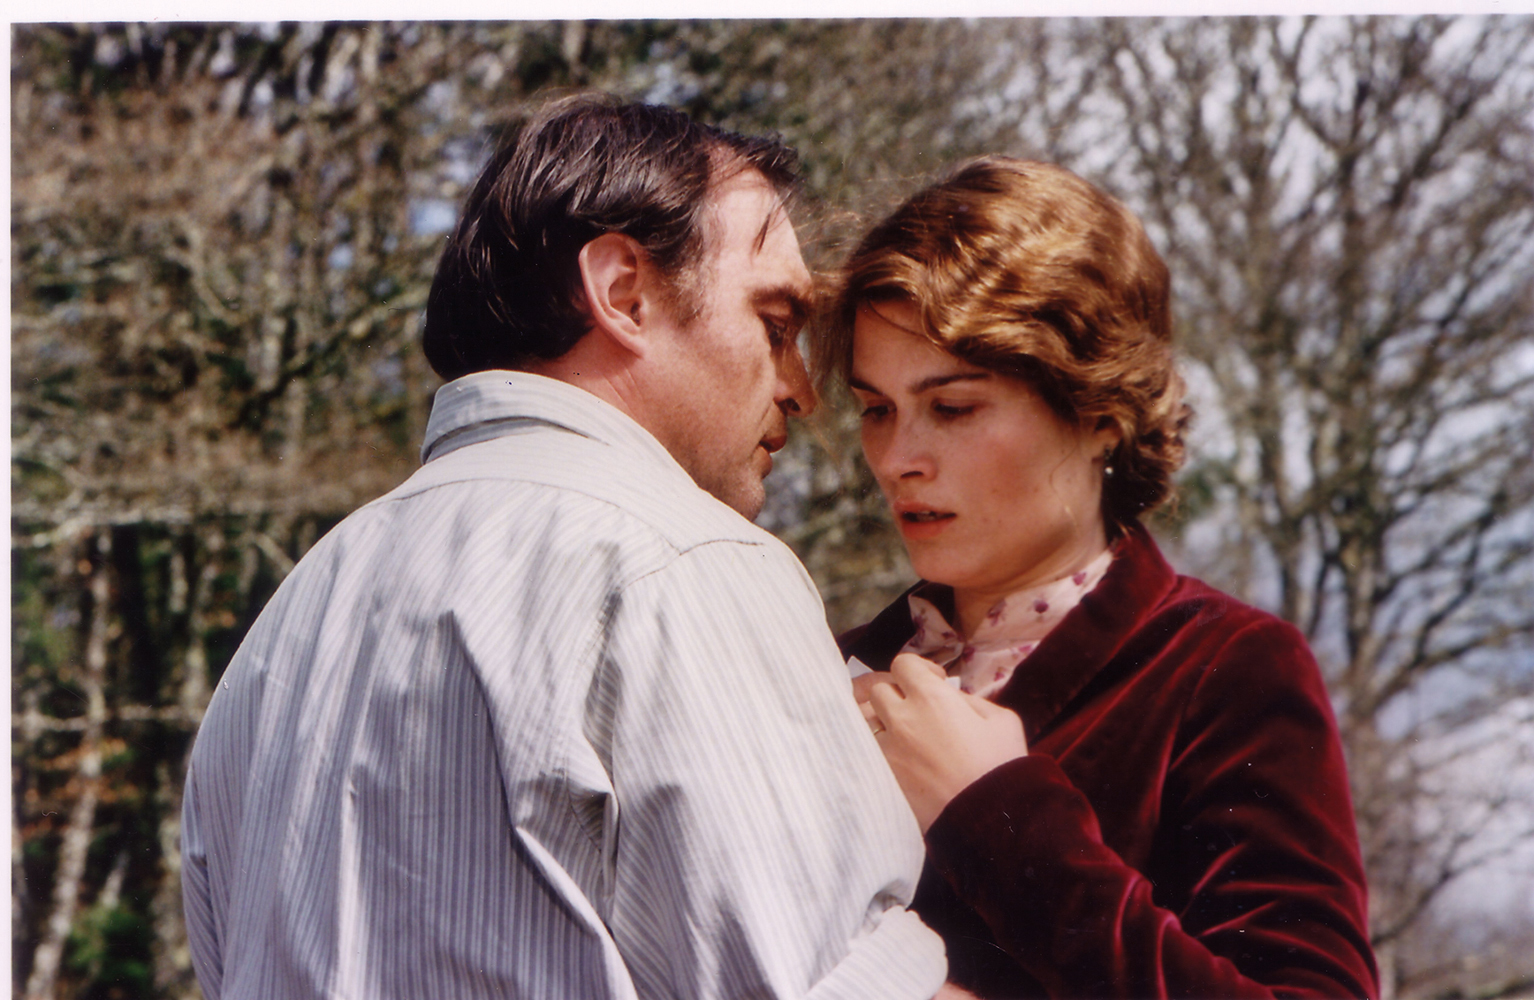 John Thomas and Lady Jane: The Second Version of Lady Chatterley's Lover